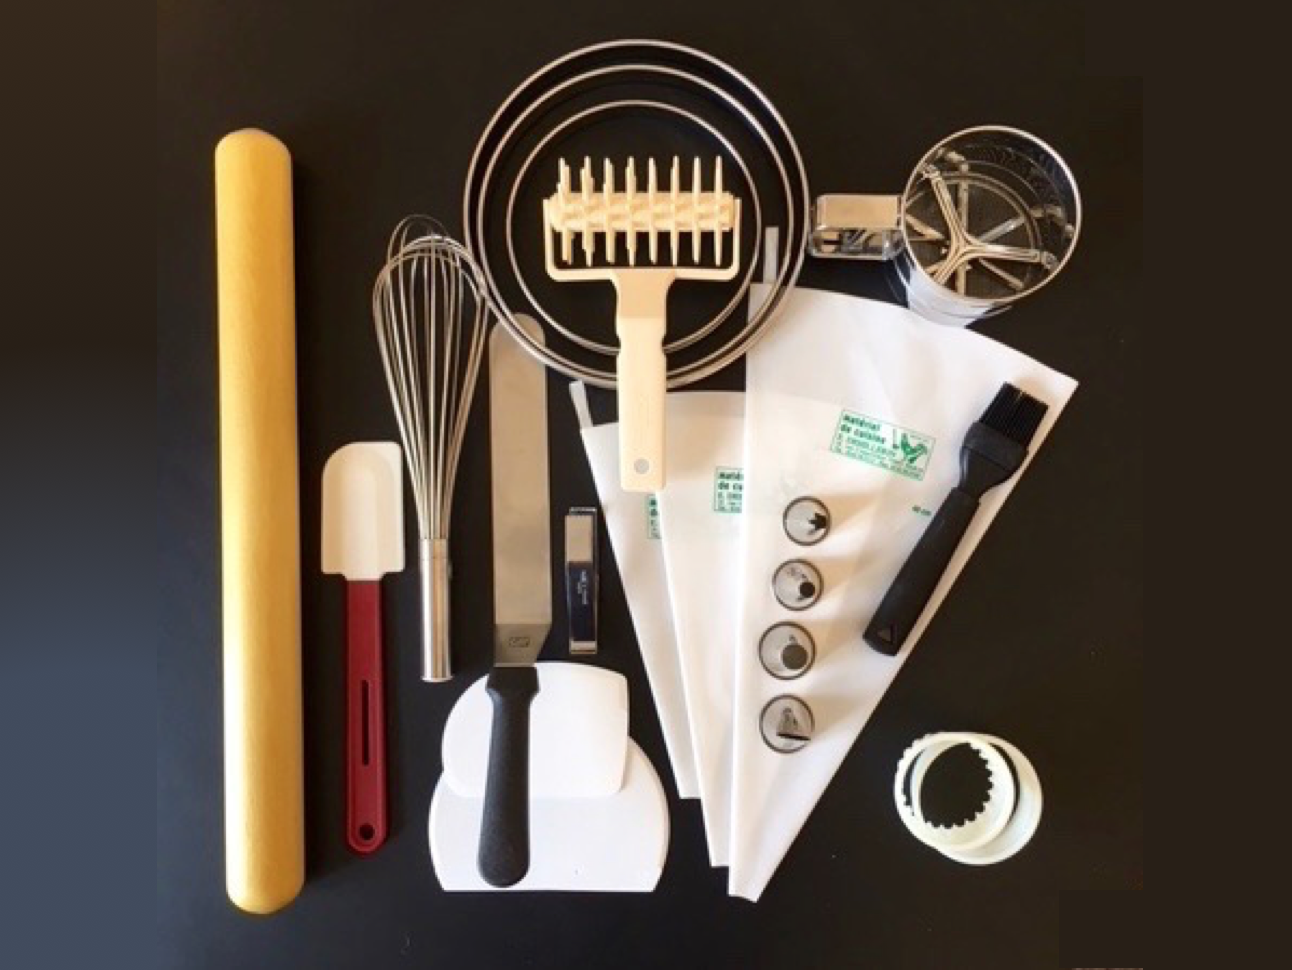 ProfessionalPastryToolkit - Everything you need to start cooking like a professional pastry chefJust €350